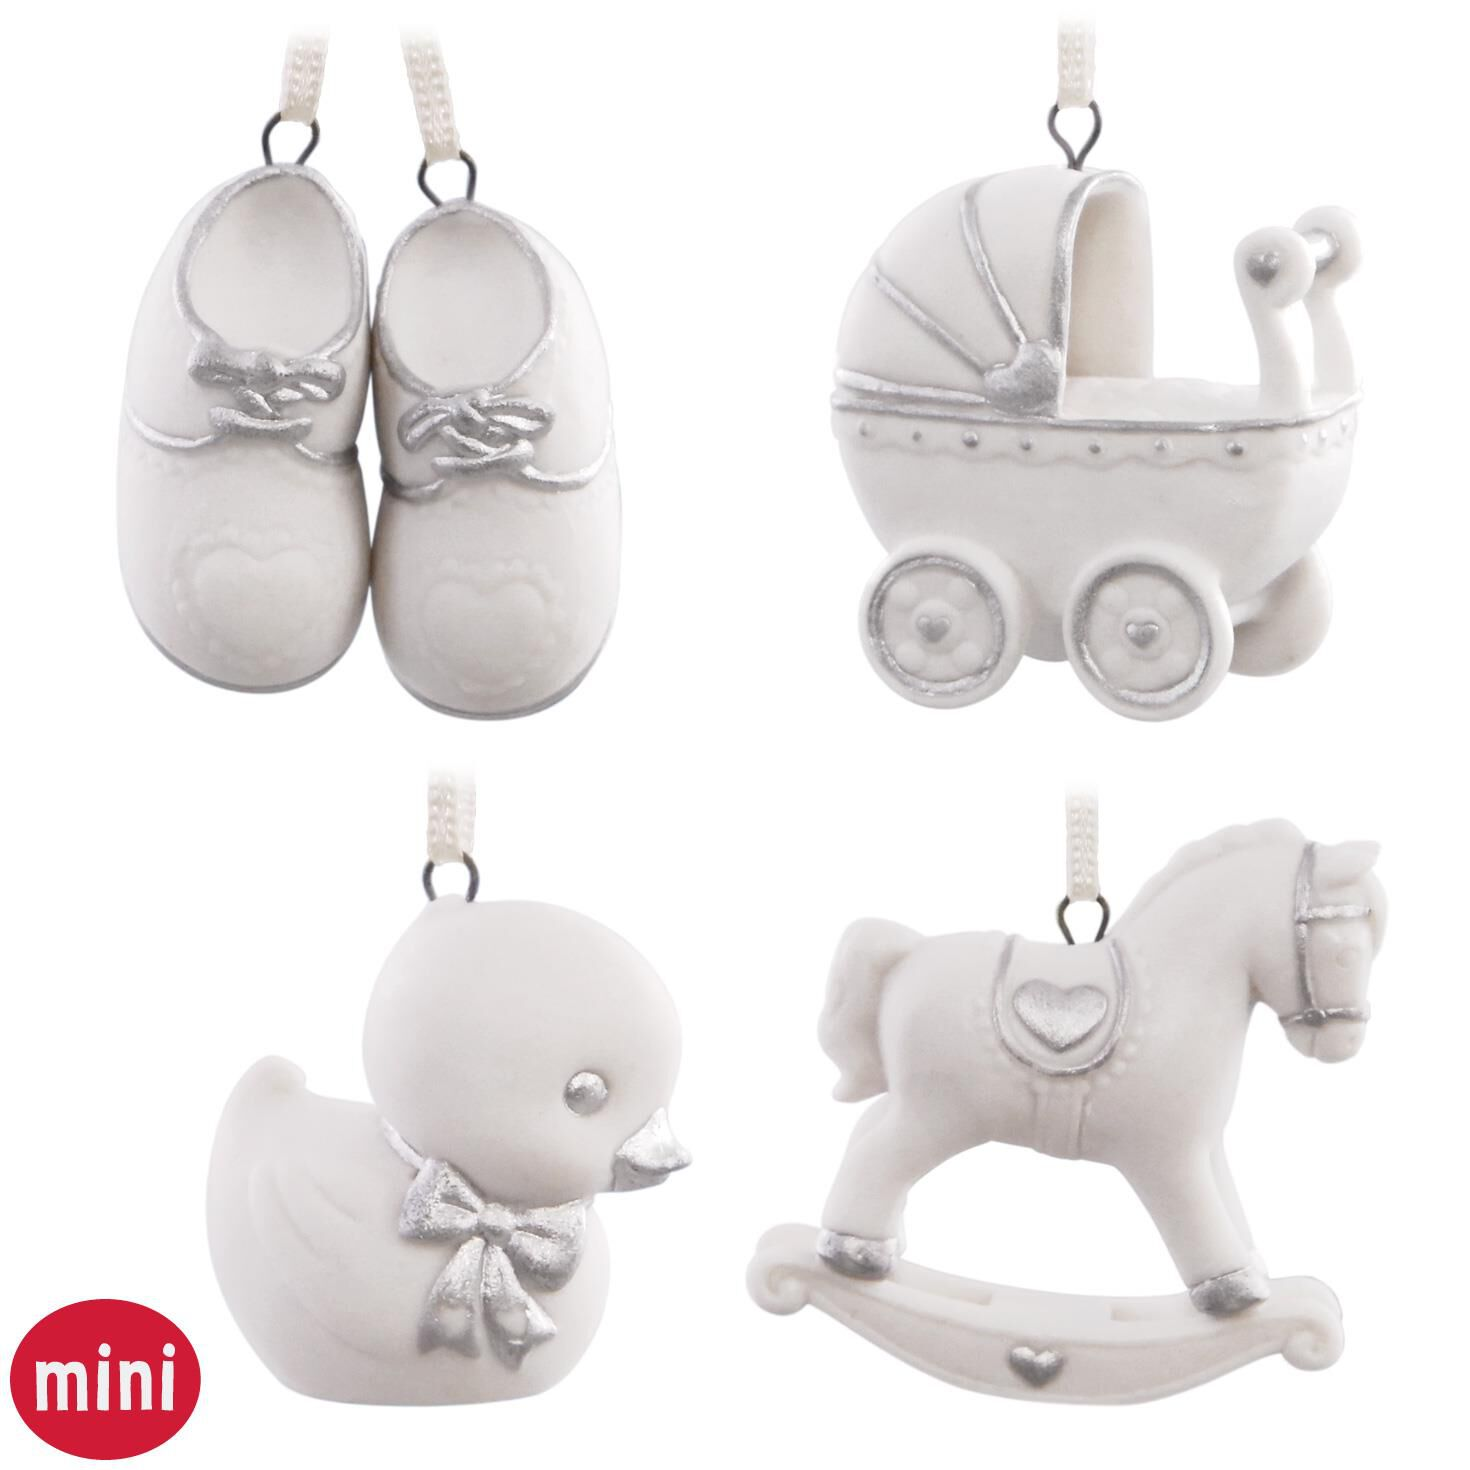 Baby ornament - Baby Ornament 16